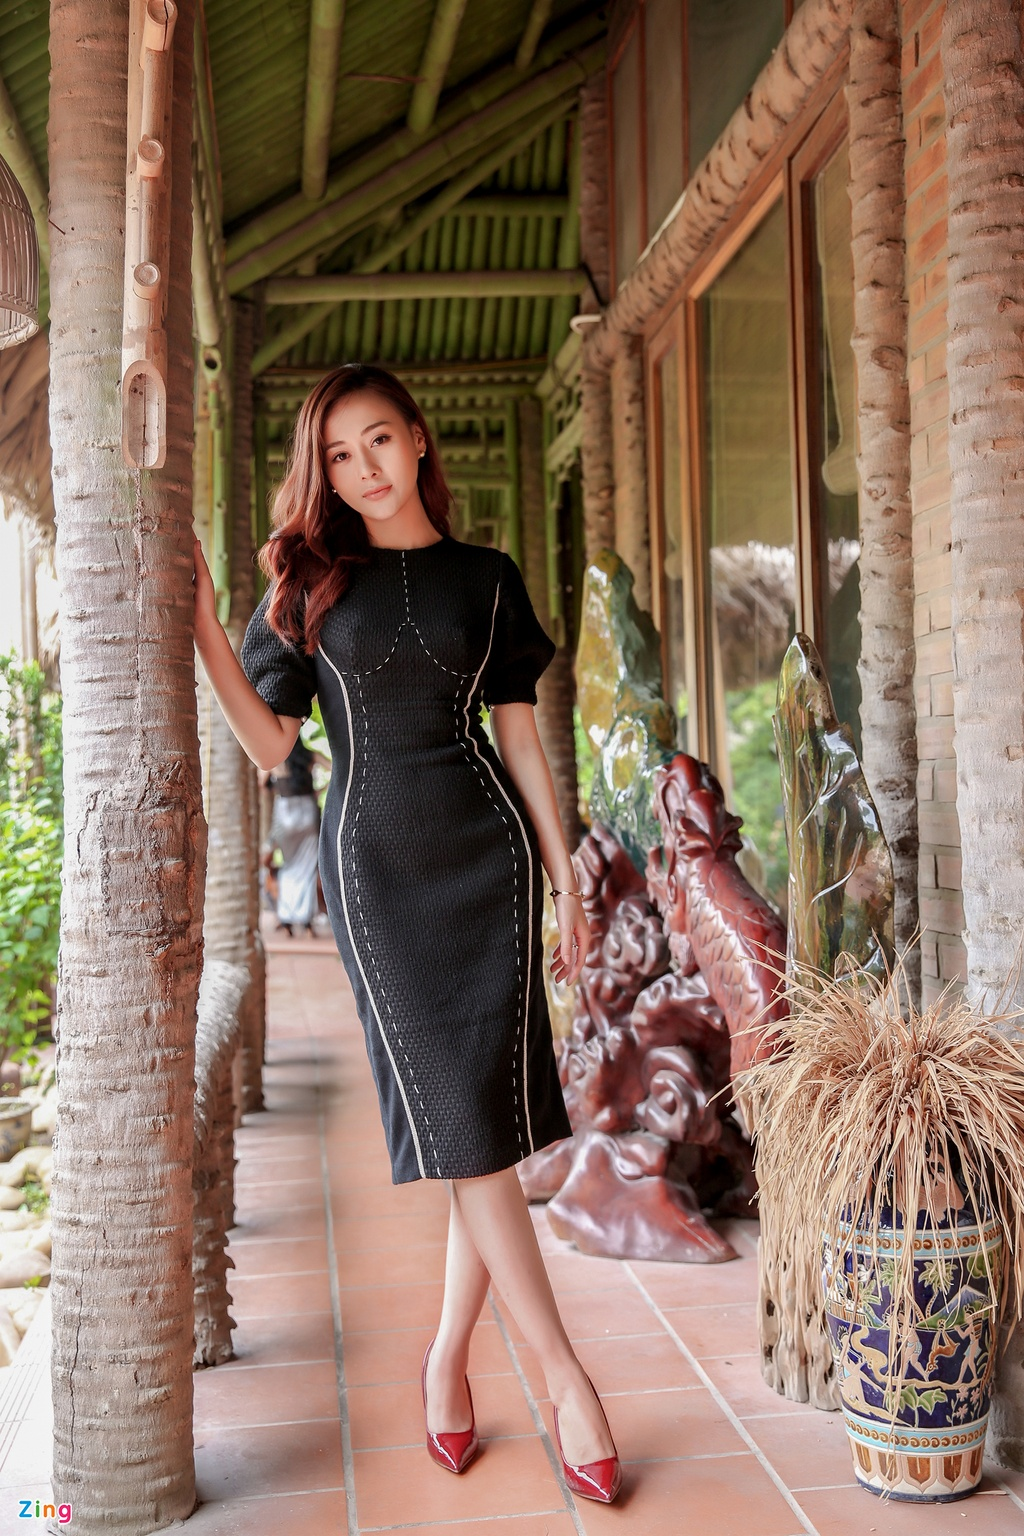 Hau truong phim Phuong Oanh Quynh bup be anh 9